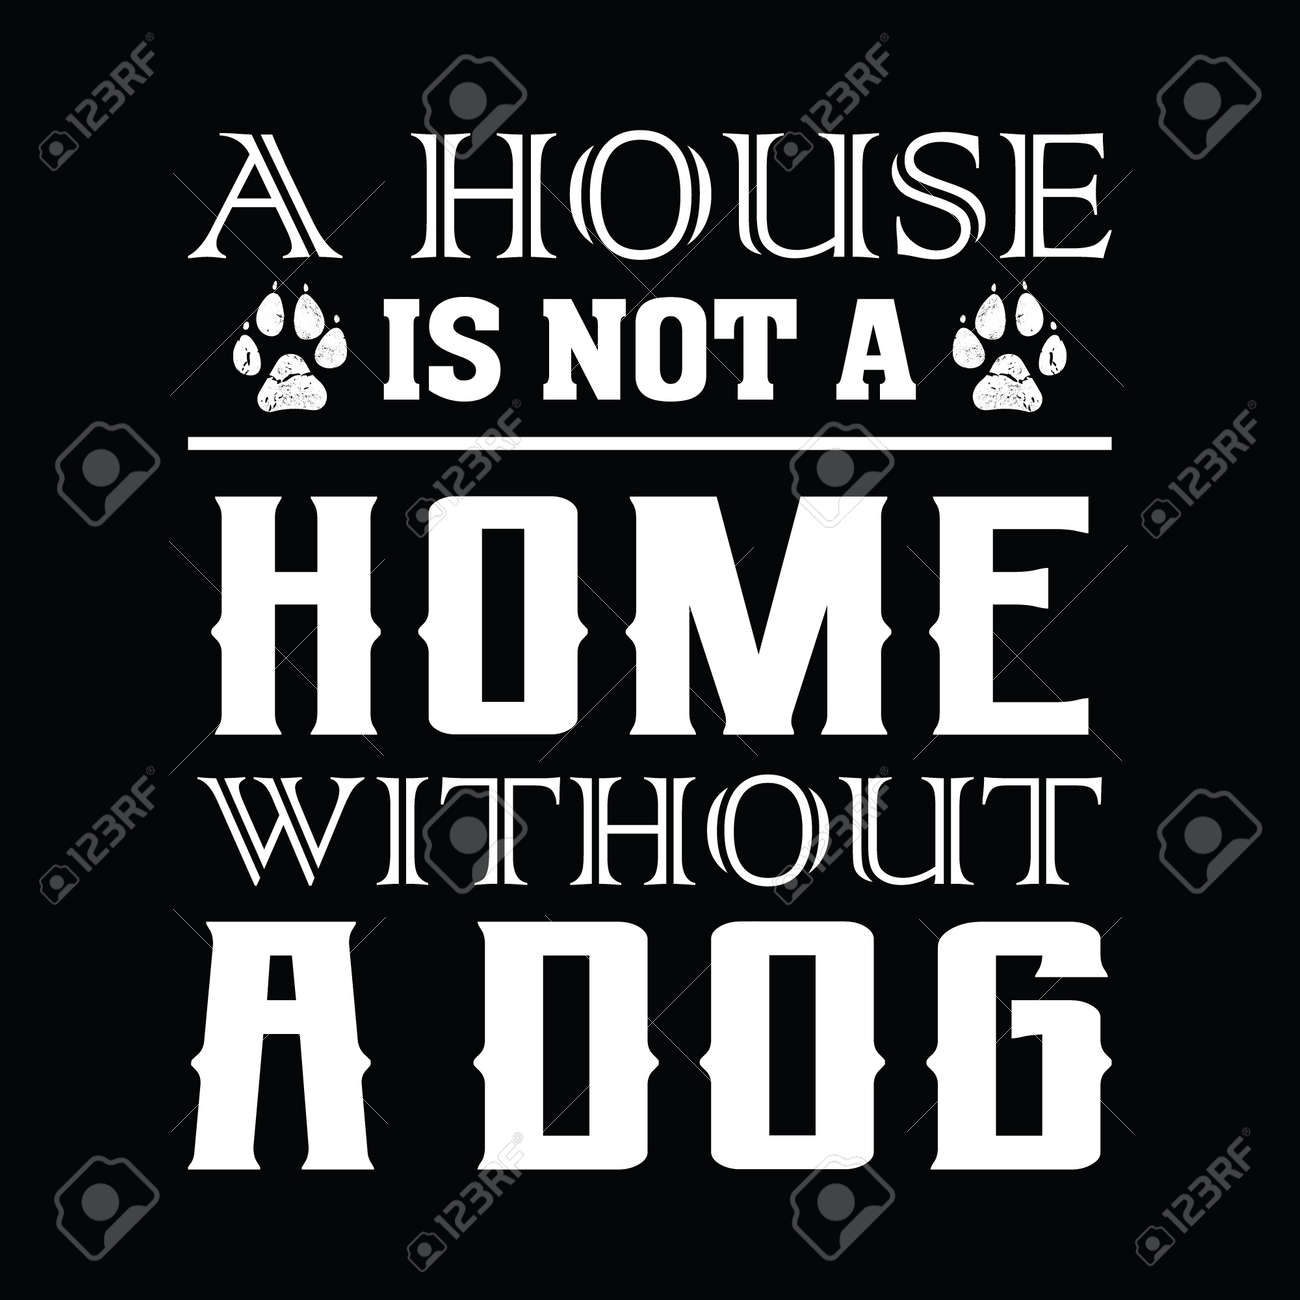 Dog Saying Design - A house is not a home without a dog - vector - 141883042